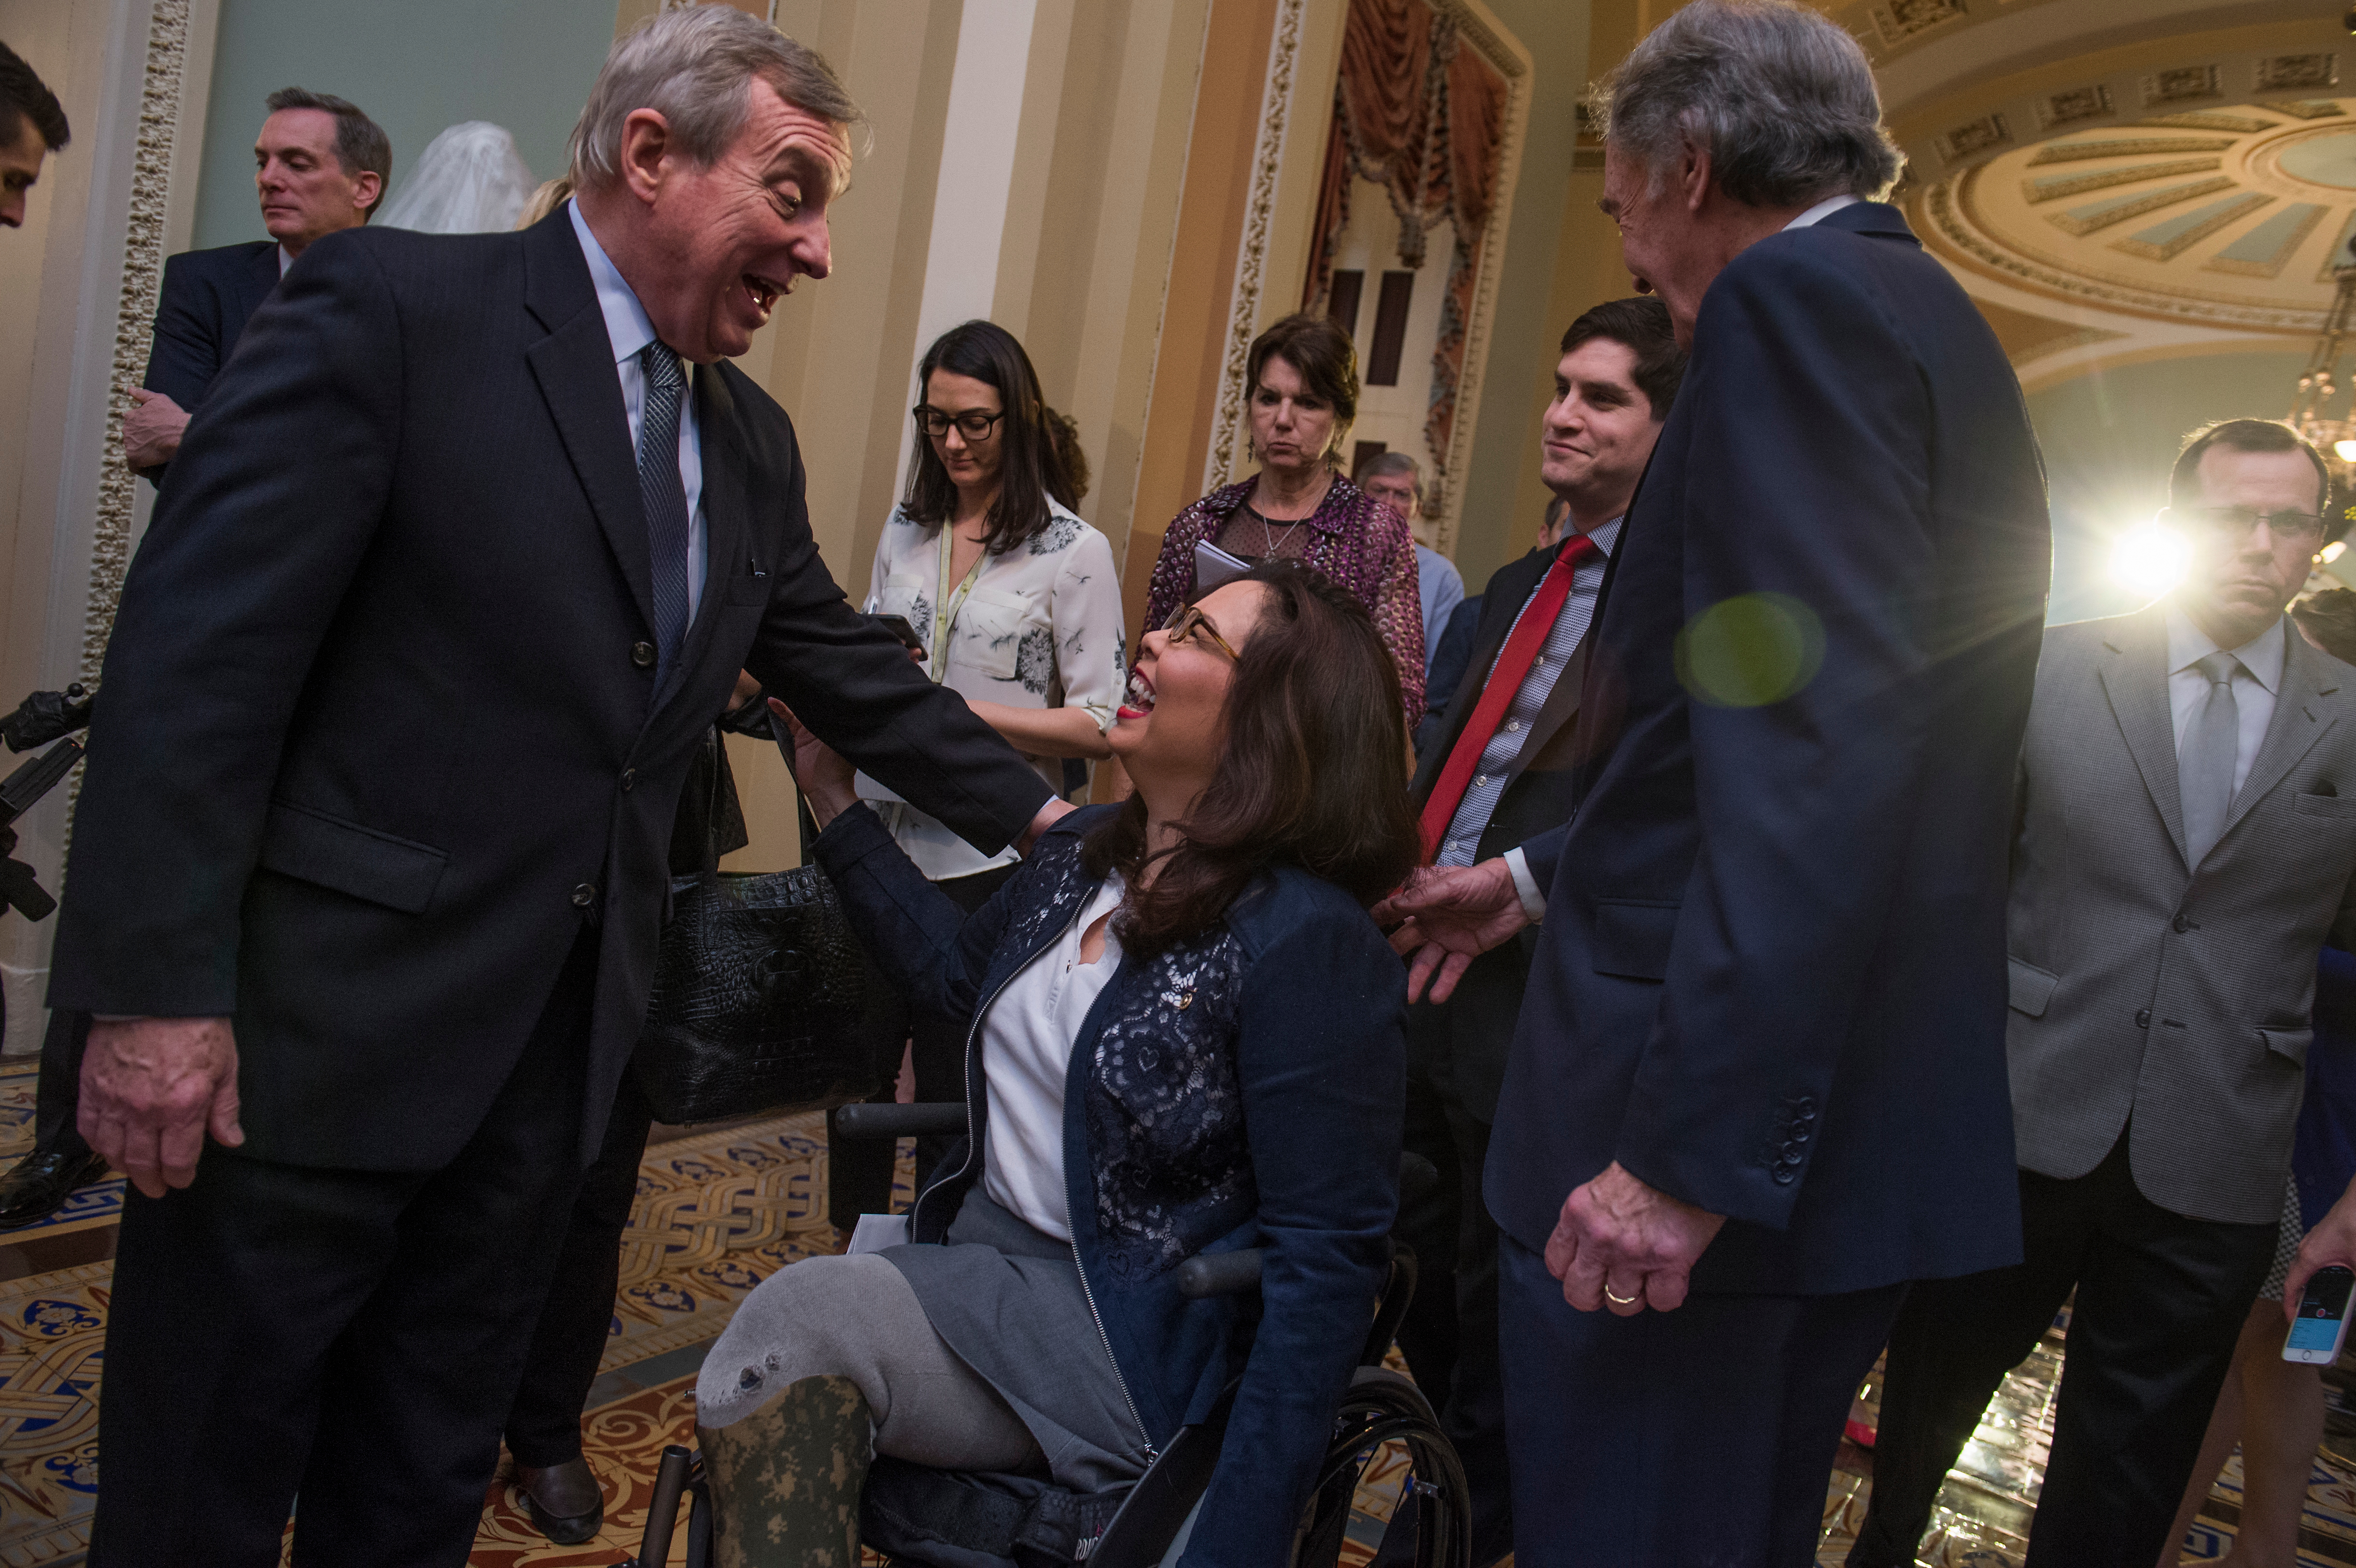 UNITED STATES - MAY 16: From left, Senate Minority Whip Richard Durbin, D-Ill., Sens. Tammy Duckworth, D-Ill., and Ed Markey, D-Mass., conclude a news conference after the Senate Policy luncheons in the Capitol on May 16, 2017. (Photo By Tom Williams/CQ Roll Call)